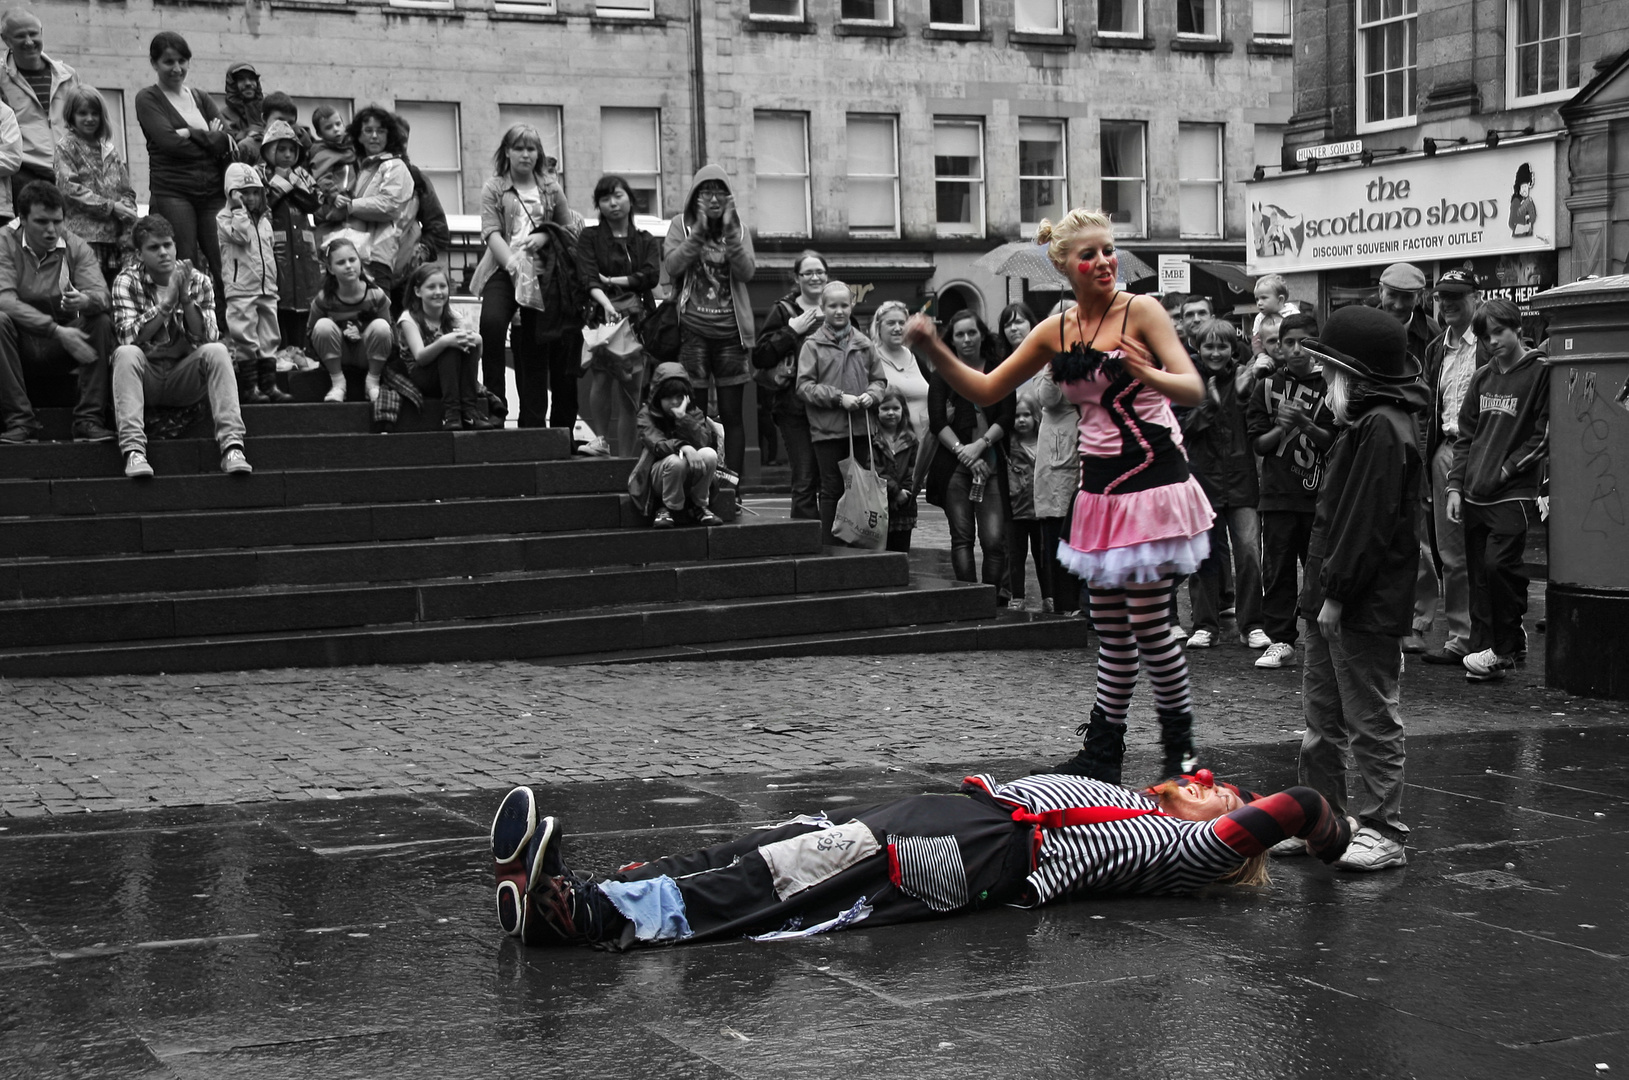 Edinburgh Festival Fringe IV. A coloured perfomance